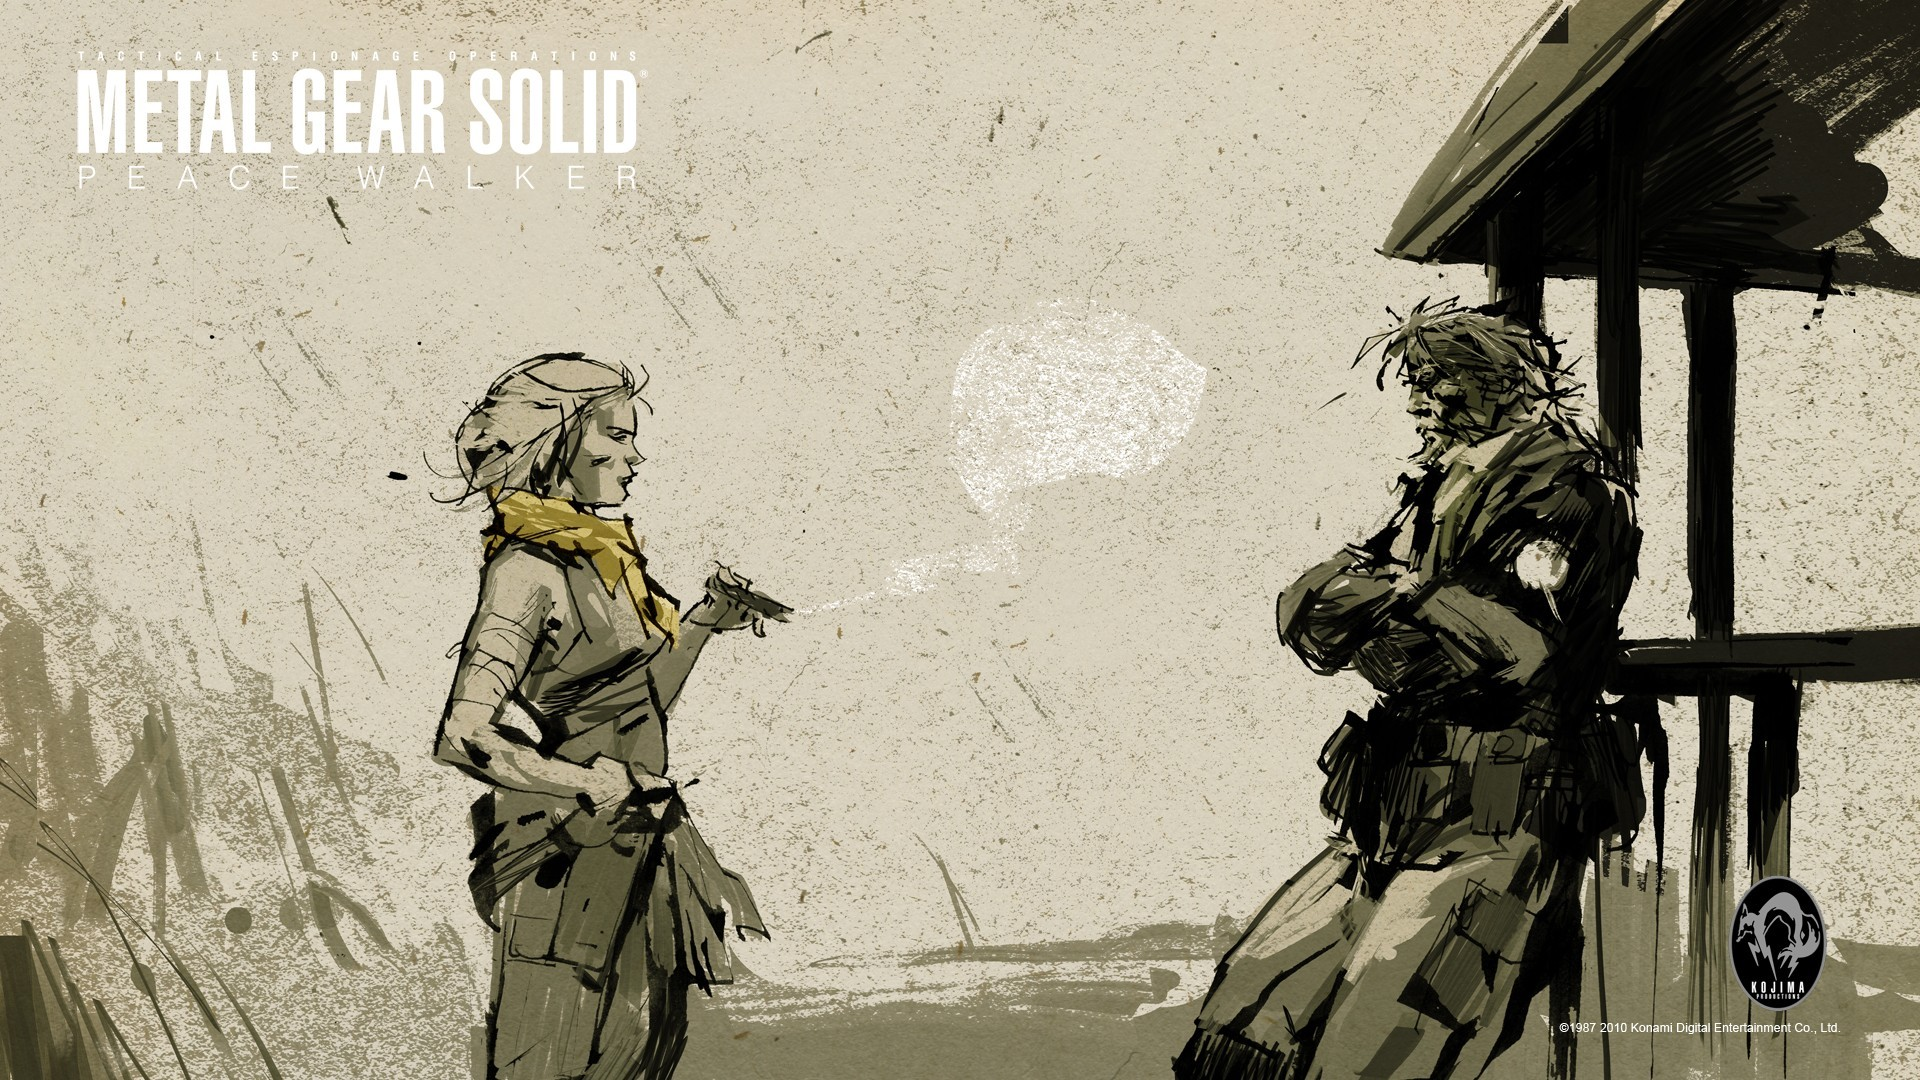 Metal Gear Solid: Peace Walker HD Wallpaper